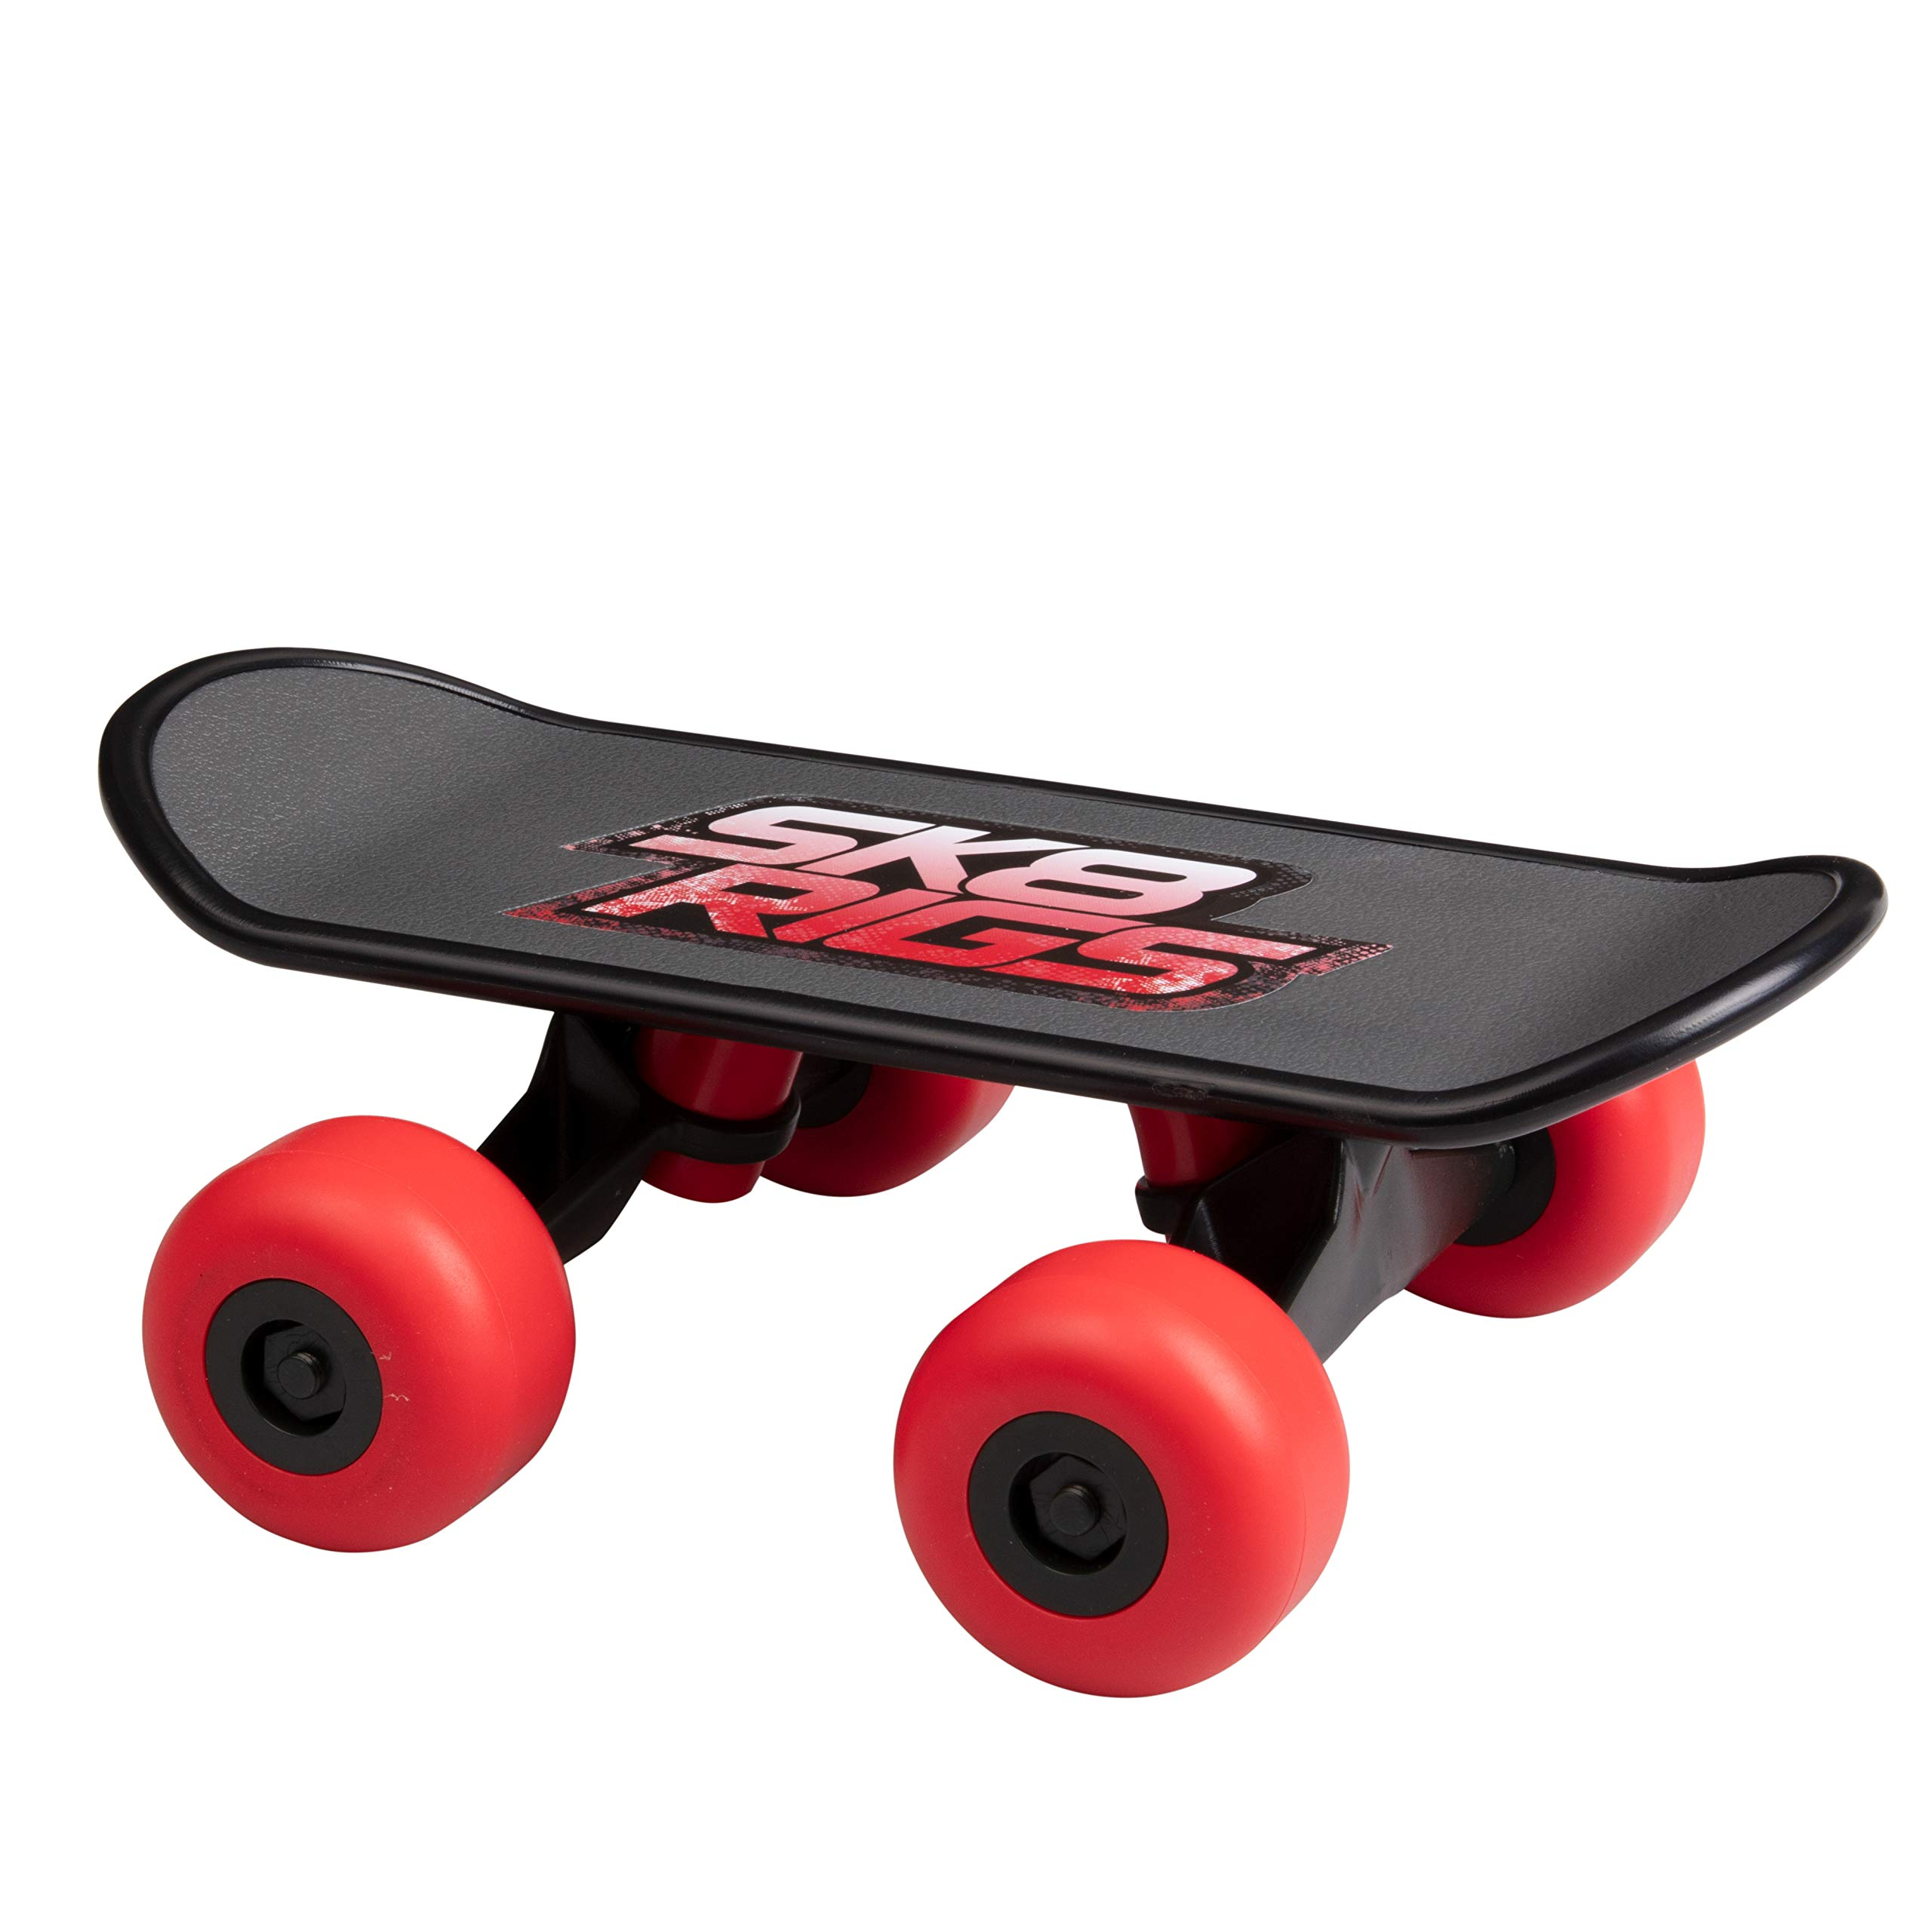 SK8 Rigs Handboard for Kids - Hand Powered Skateboard - Safely Perform Amazing Skateboard Tricks with Your Hands - Falco Red - Age 3+